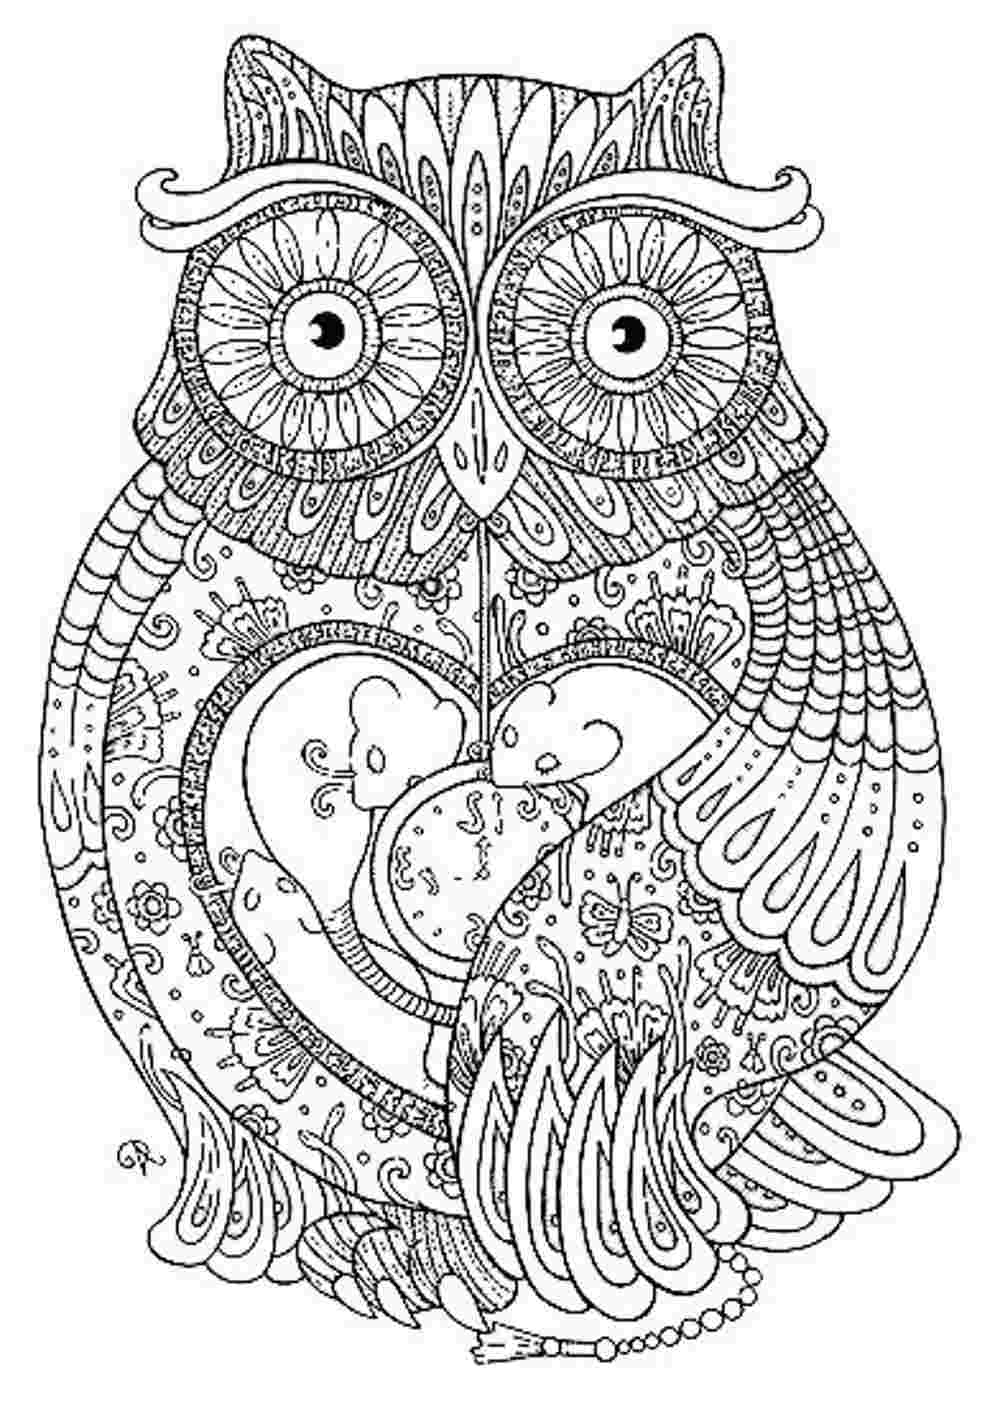 1000x1403 Advanced Coloring Pages For Adults, Printable Advanced Coloring